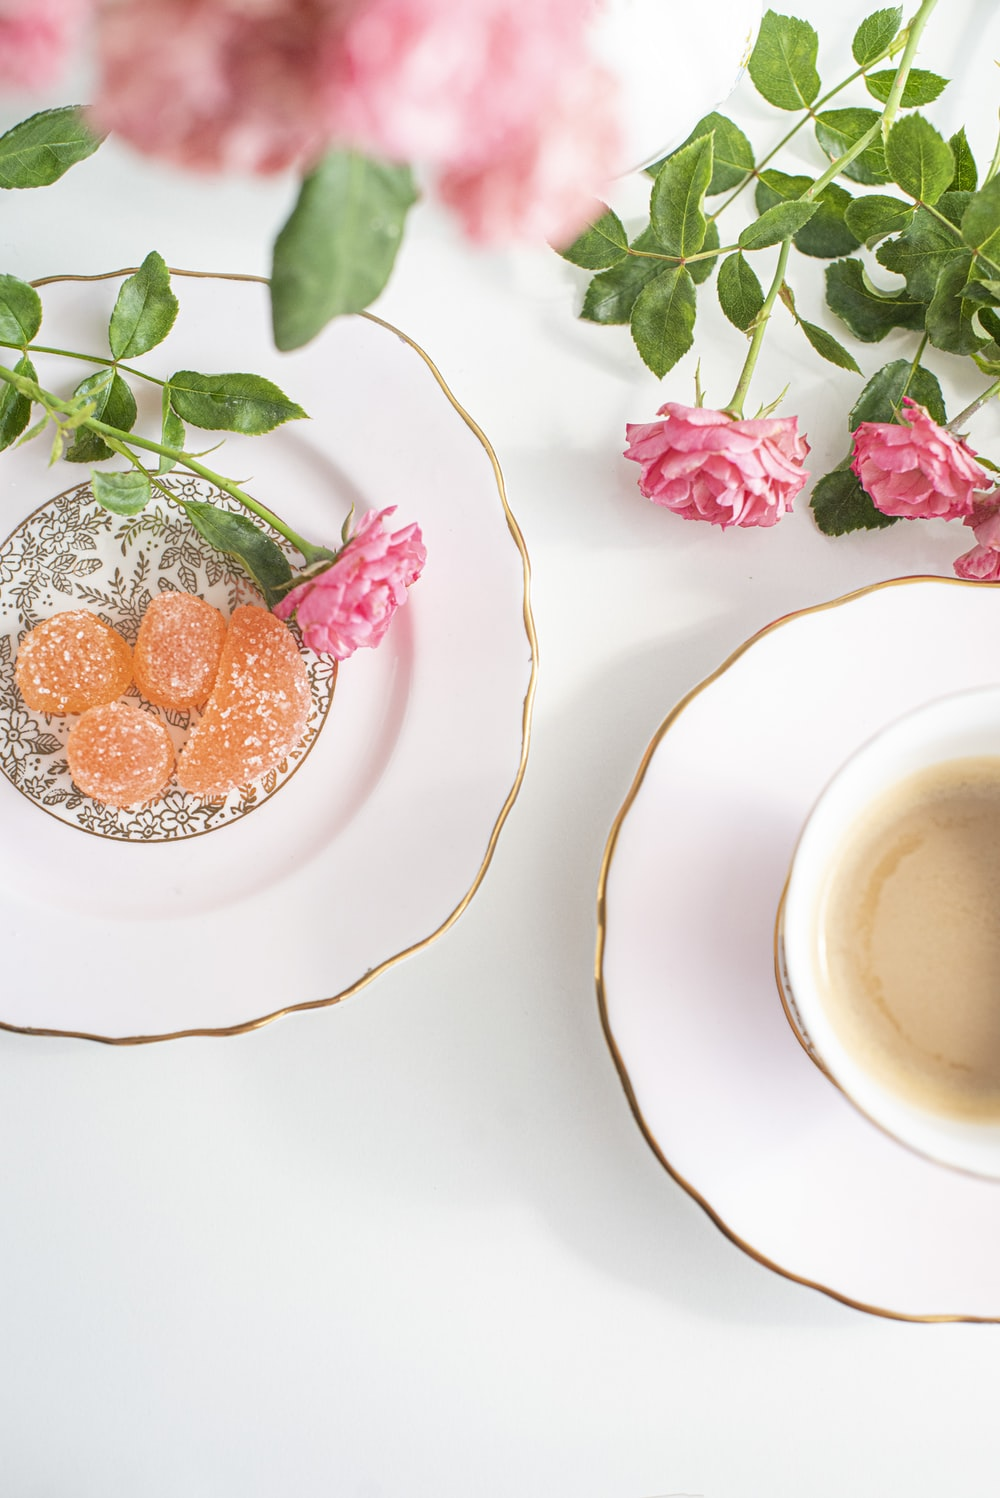 white ceramic cup with saucer beside pink flowers